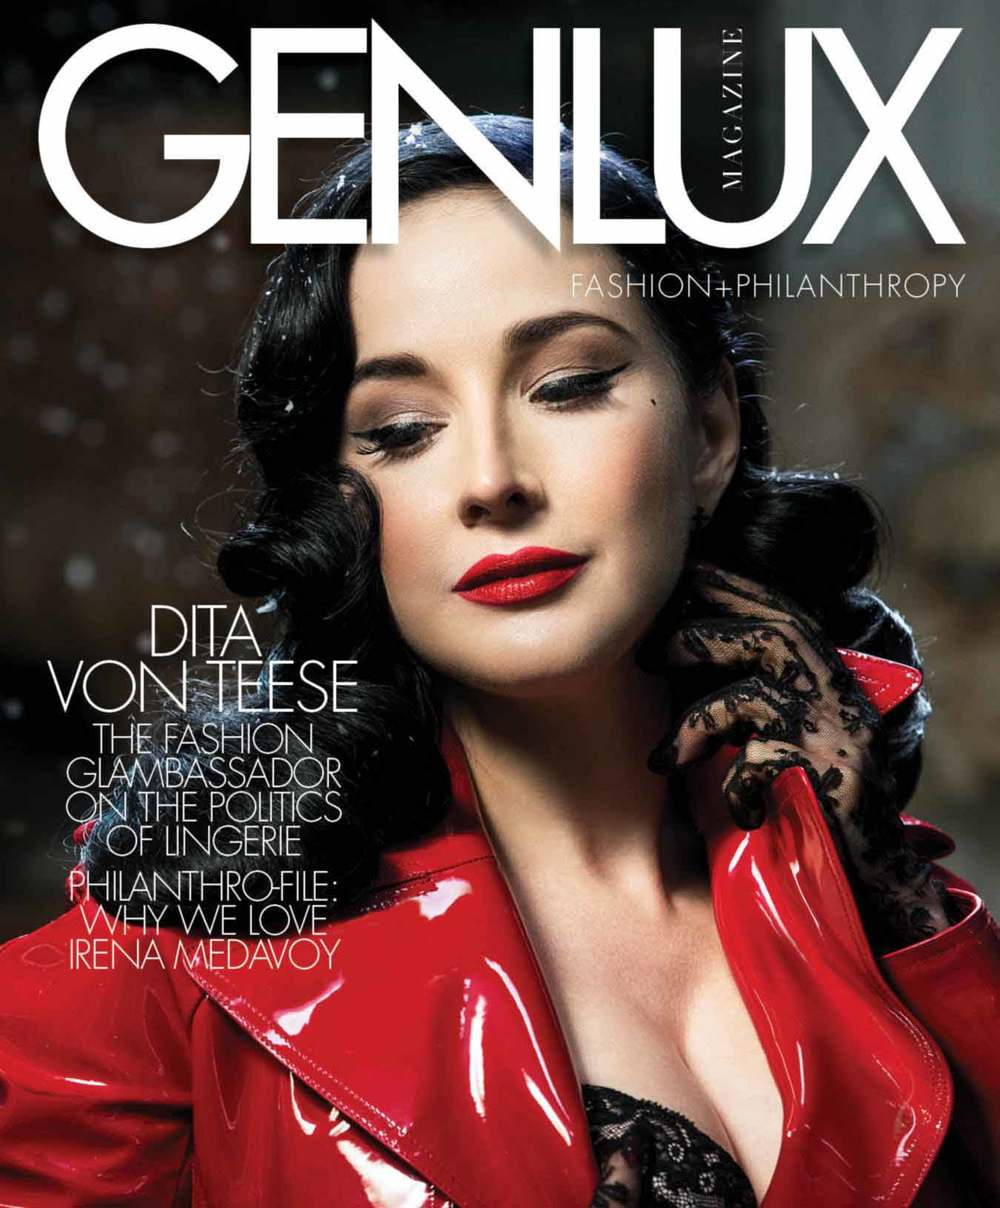 Genlux Winter 2014/15 cover with Dita Von Teese wearing Valentino coat and Dita Von Teese lingerie and gloves